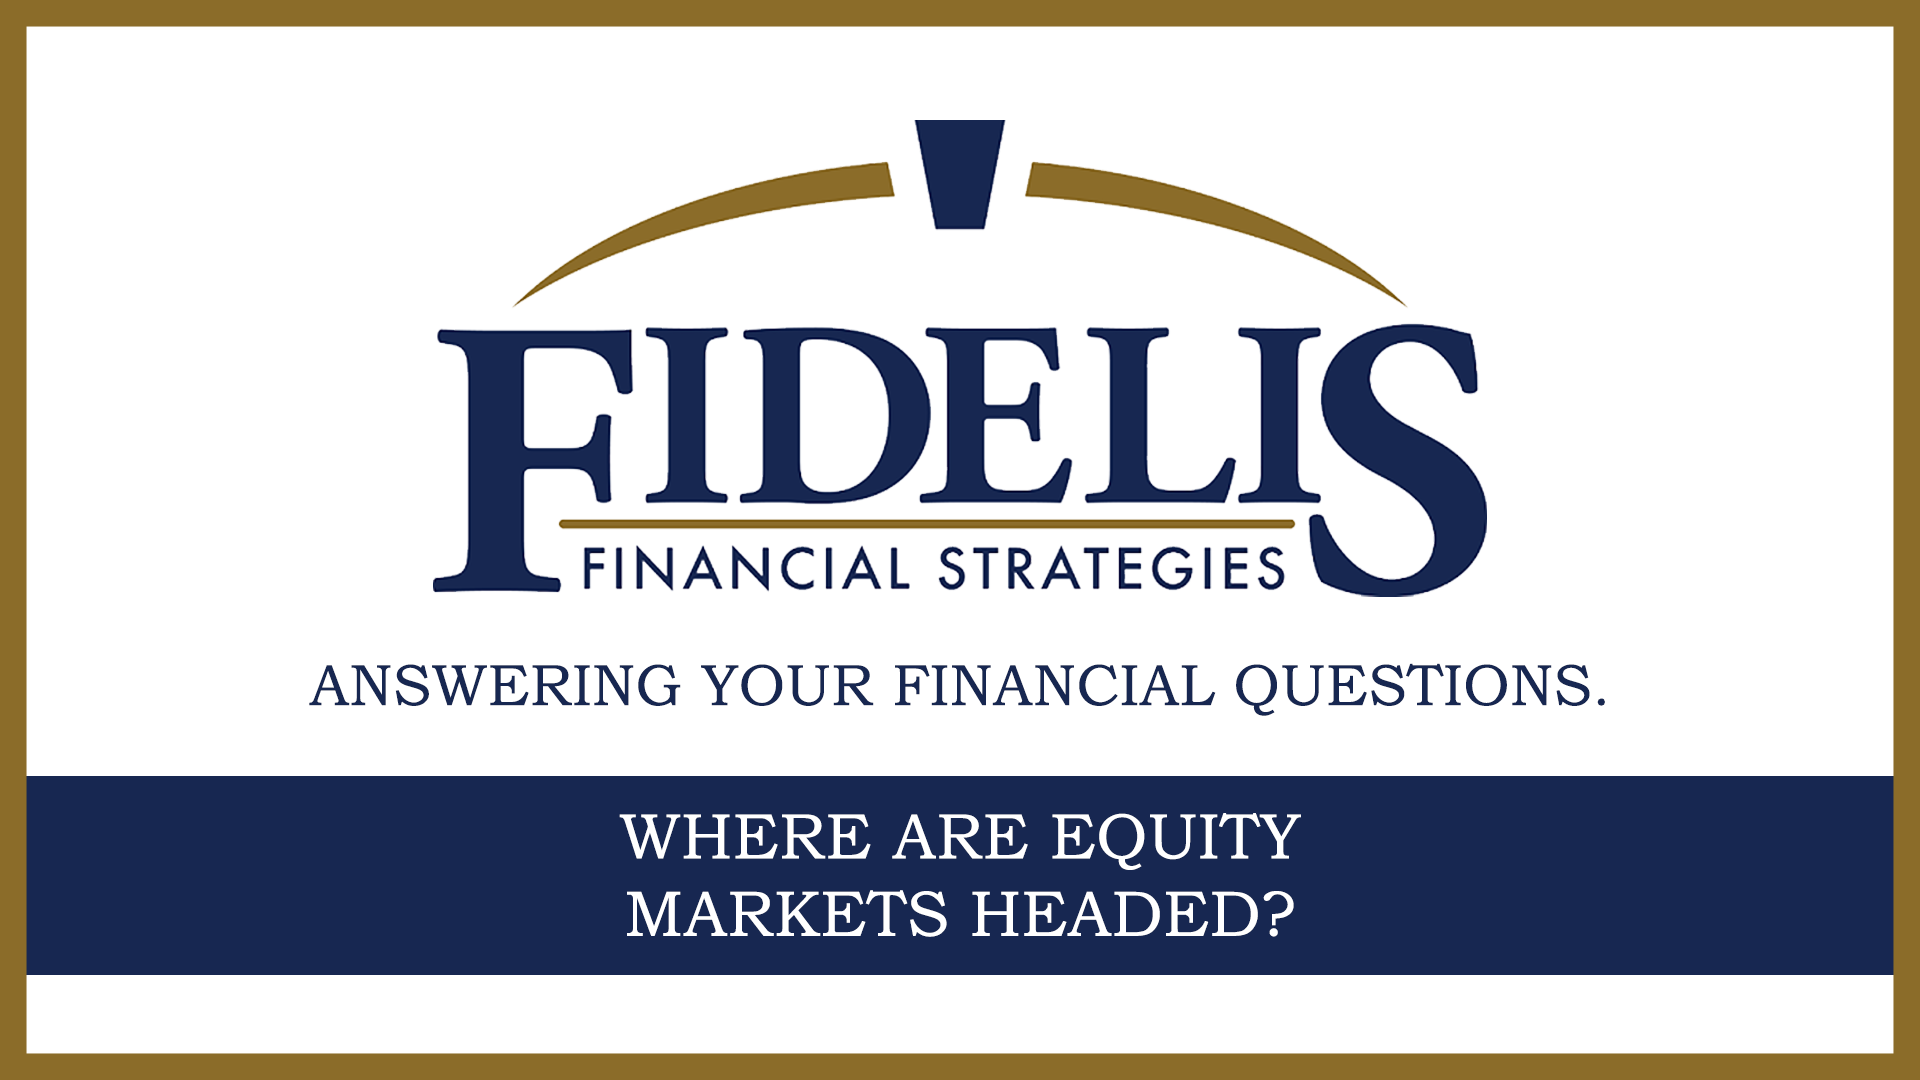 Where Are Equity Markets Headed? Thumbnail